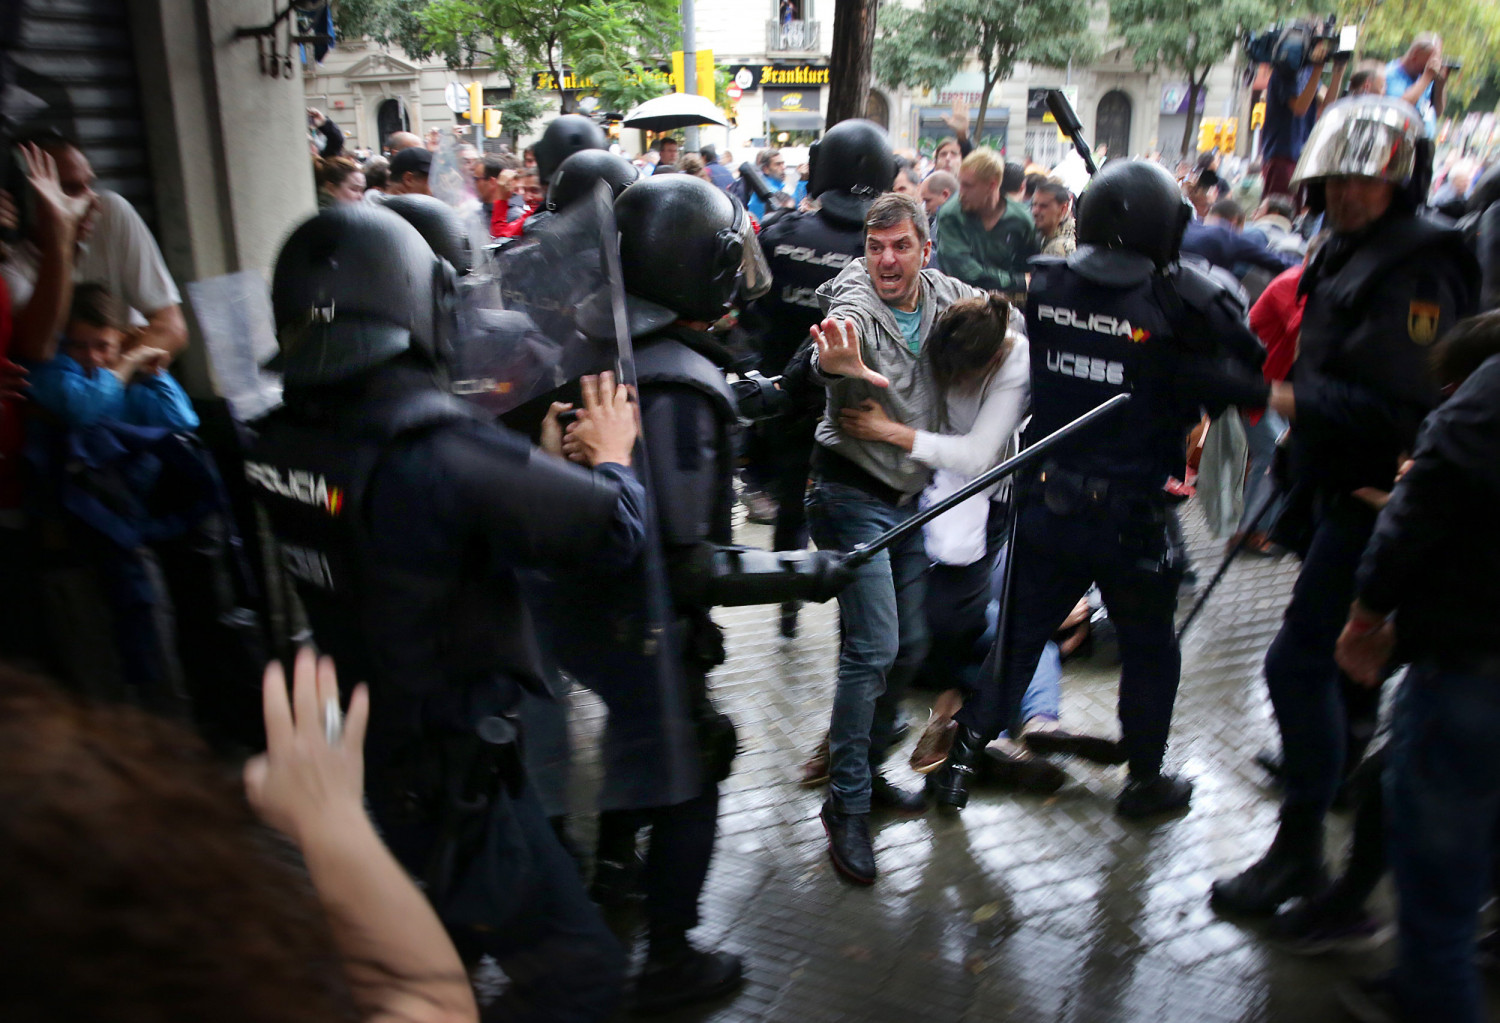 A man shields a woman from the police in Barcelona outside of an independence referendum polling station (by Jordi Play)